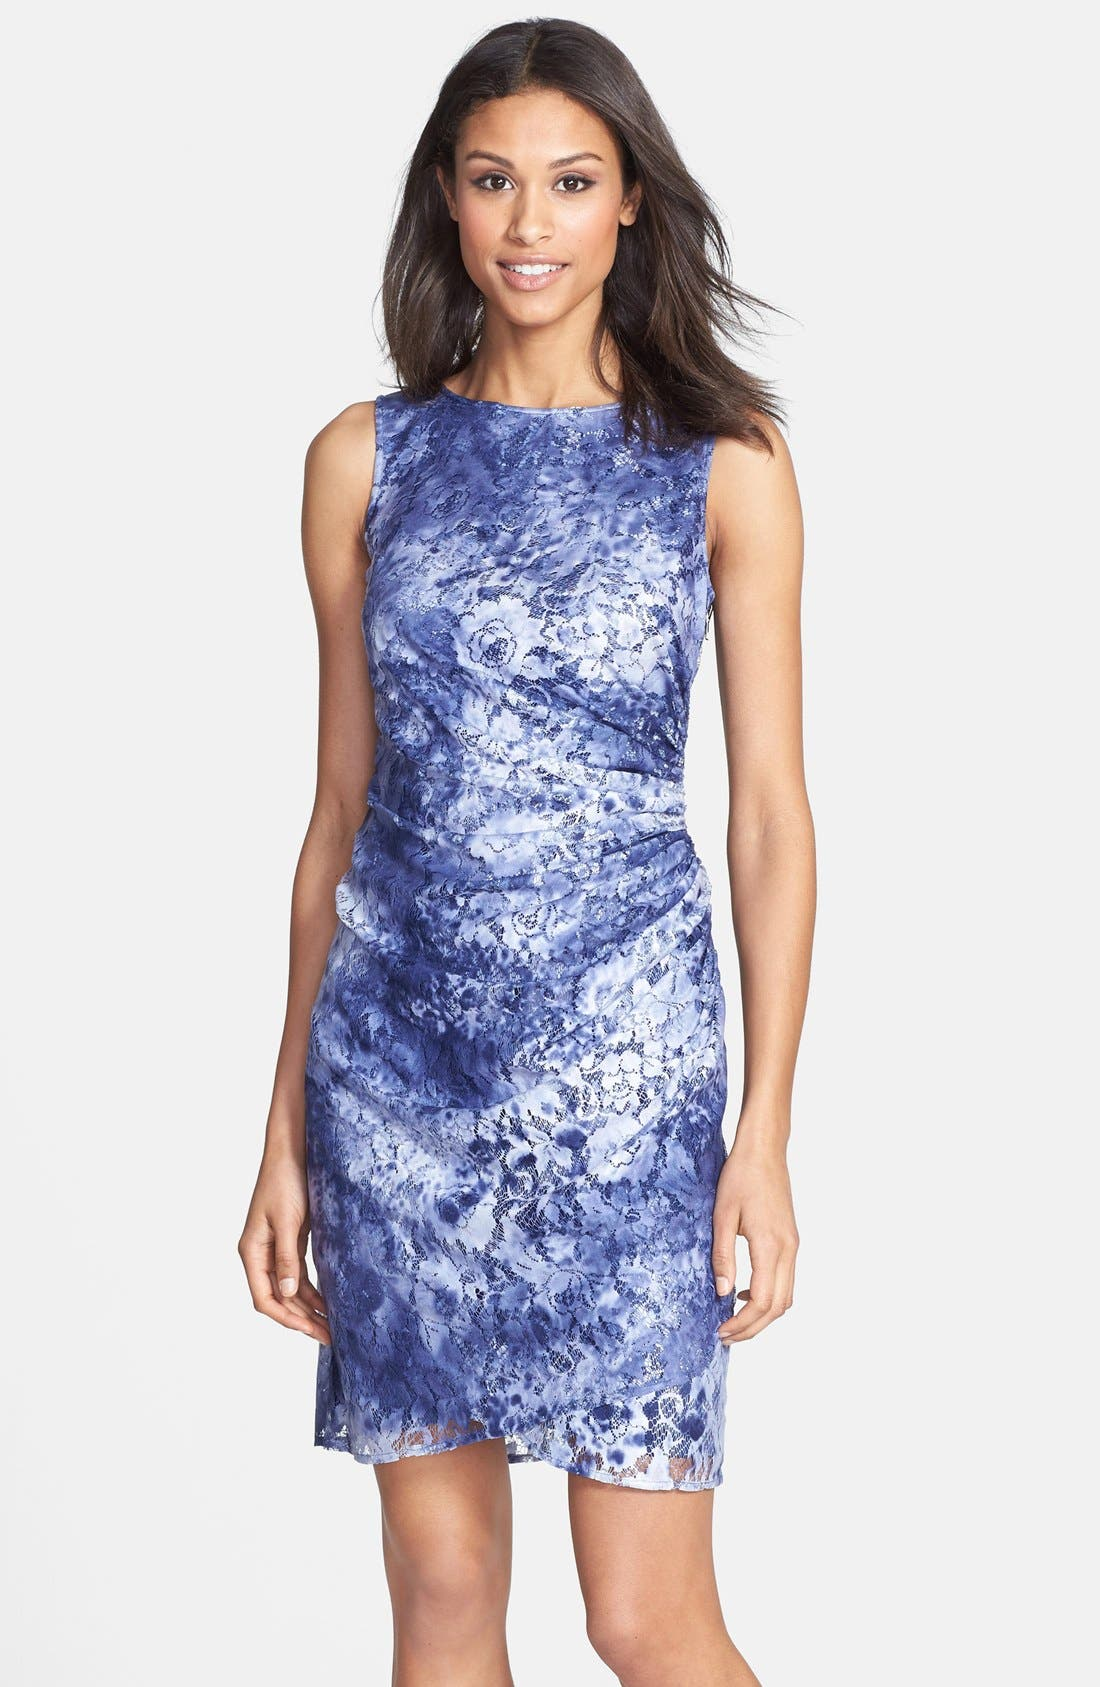 Alternate Image 1 Selected - Adrianna Papell Tie Dye Lace Sheath Dress (Regular & Petite)